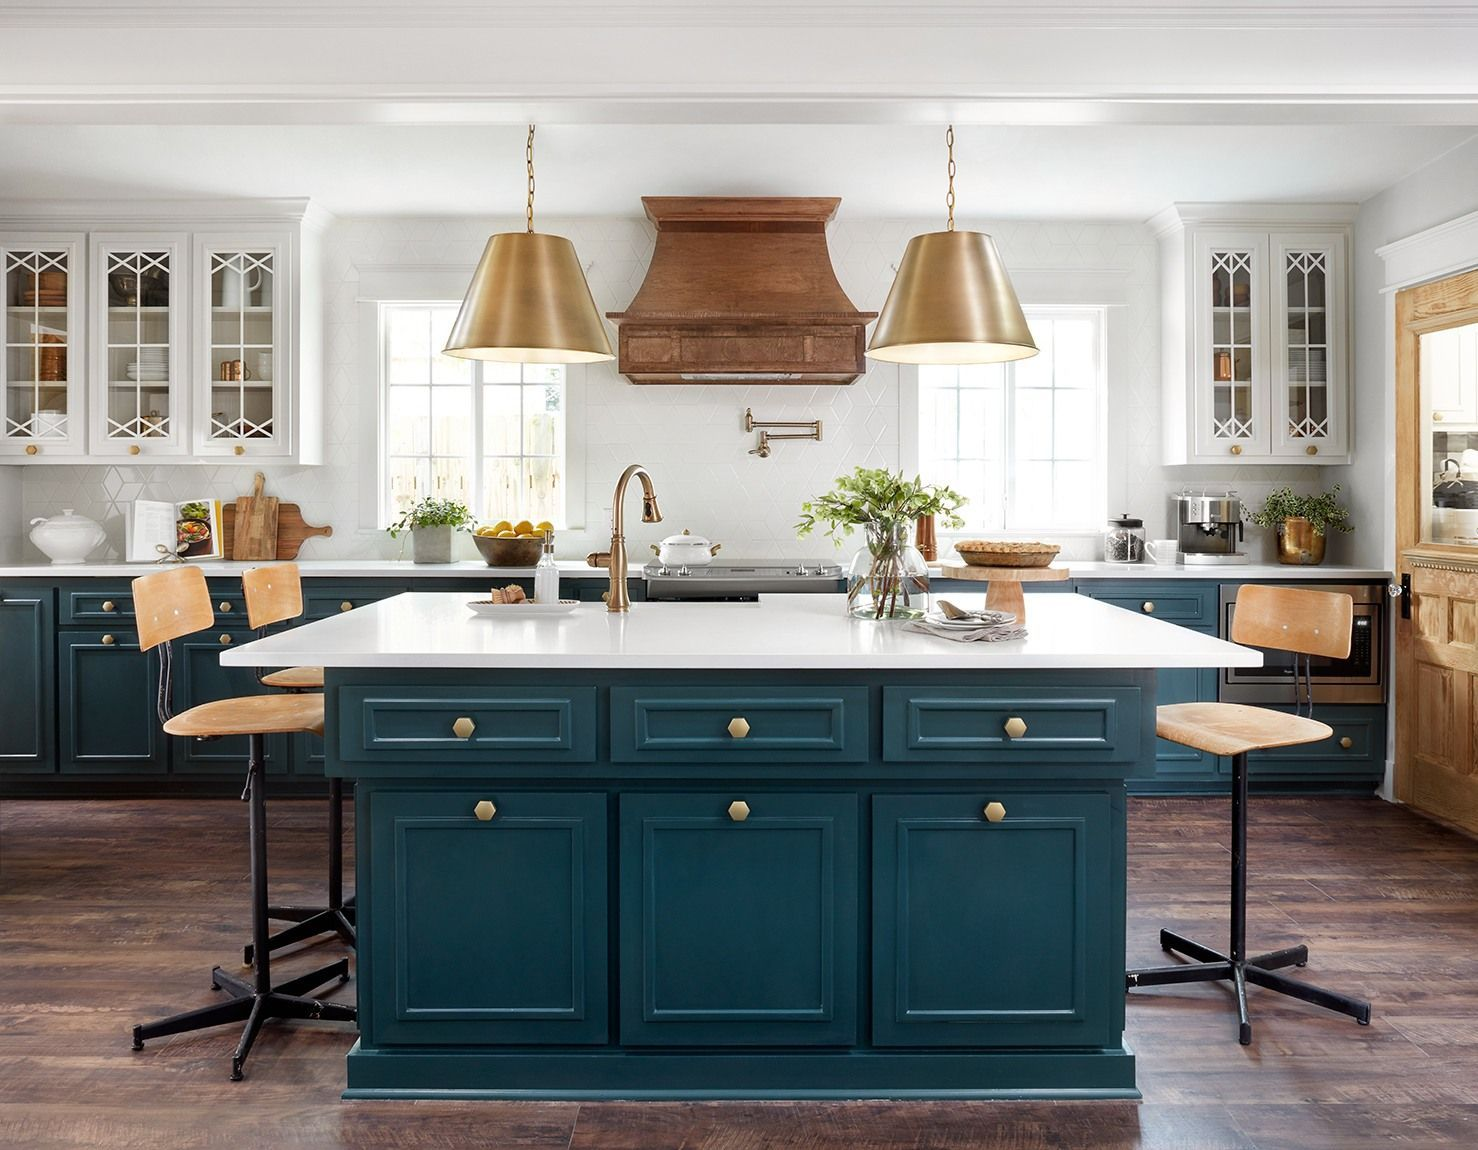 The brass pendant lighting adds a modern element to the kitchen and